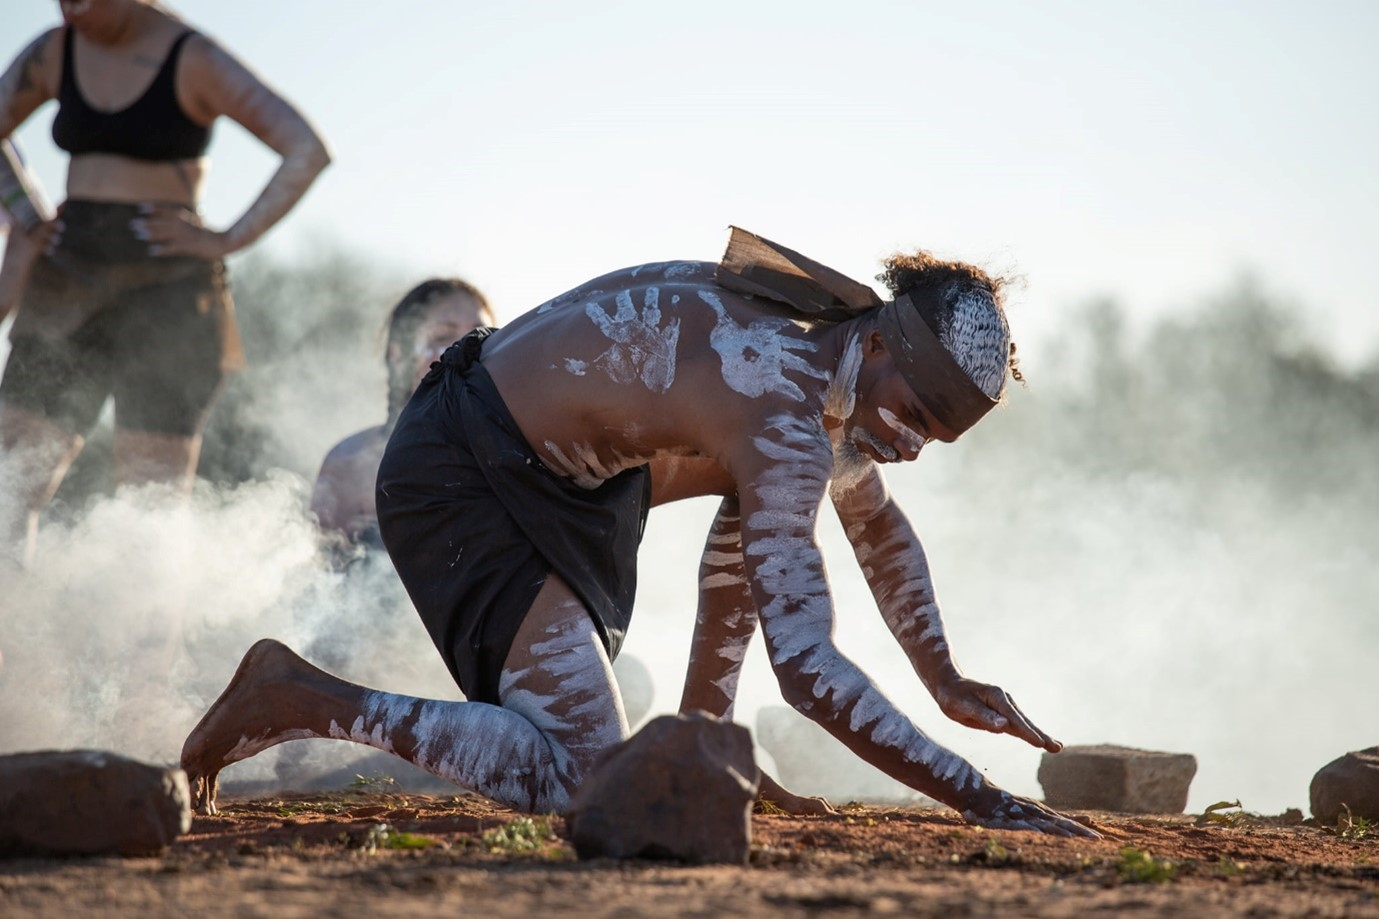 The Waddananggu ceremony of the W&J indigenous people on Country threatened by Adani's coal project